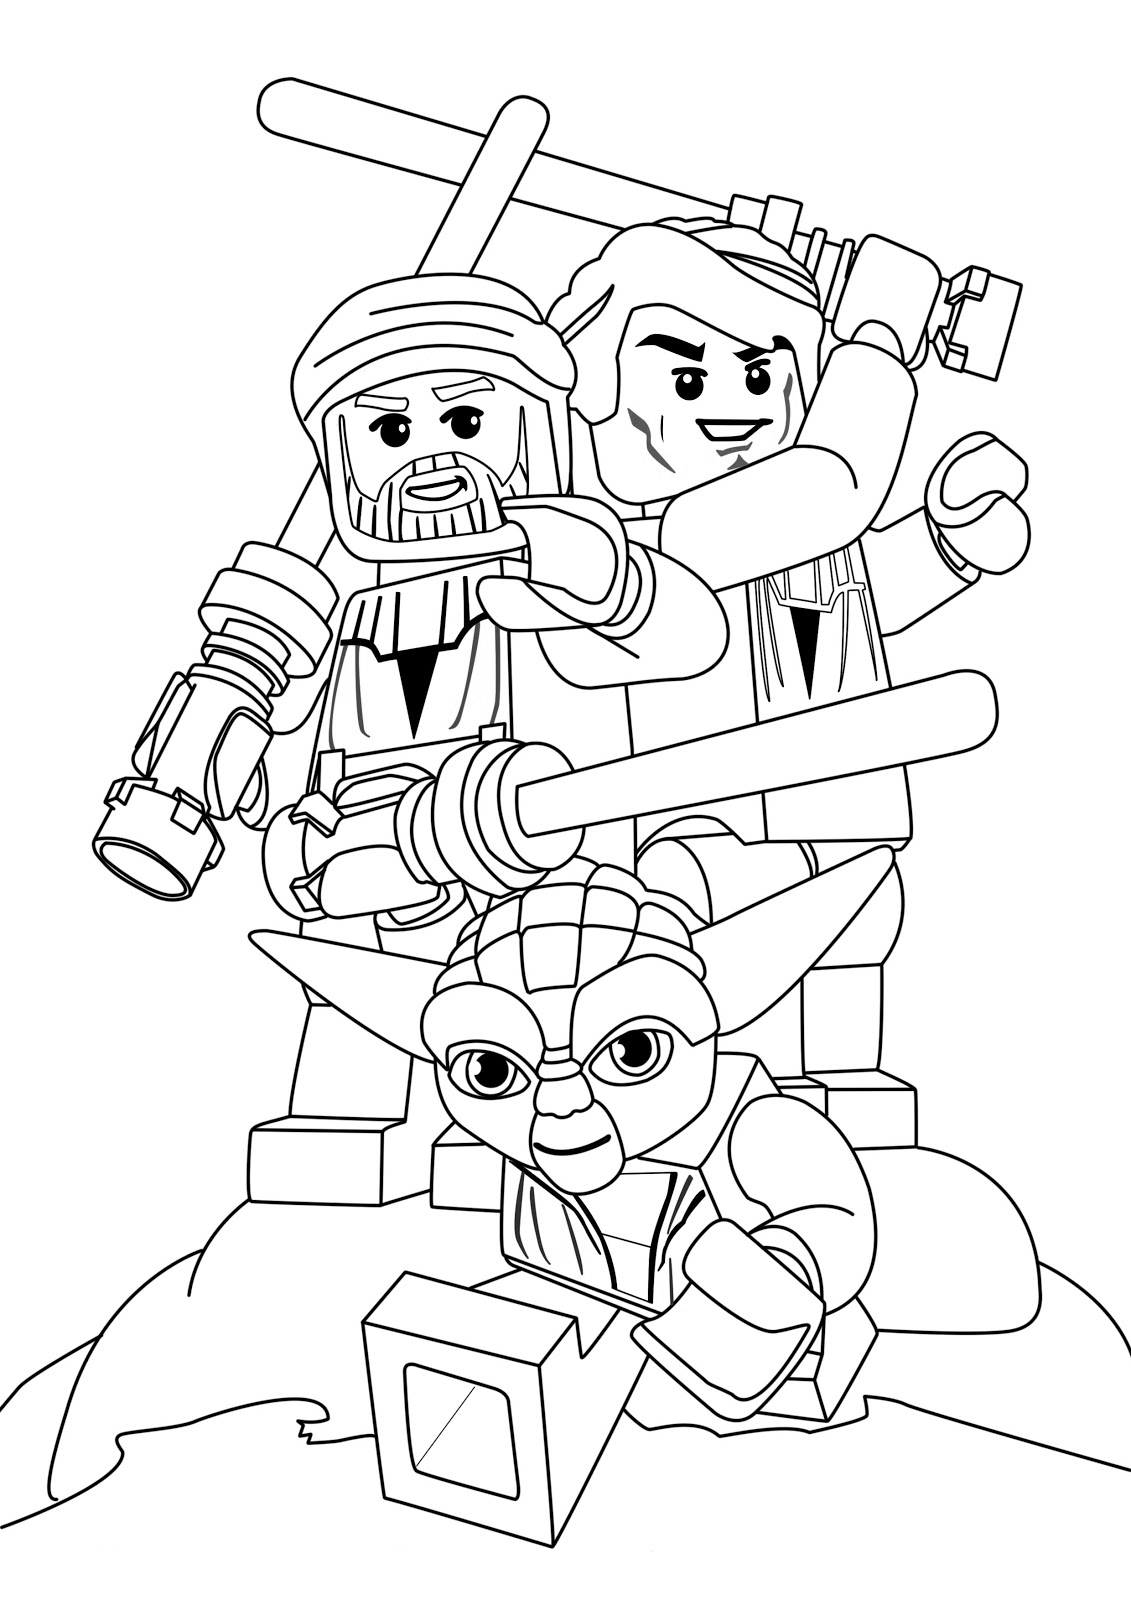 lego star wars pictures to colour lego star wars coloring pages best coloring pages for kids lego pictures colour to wars star